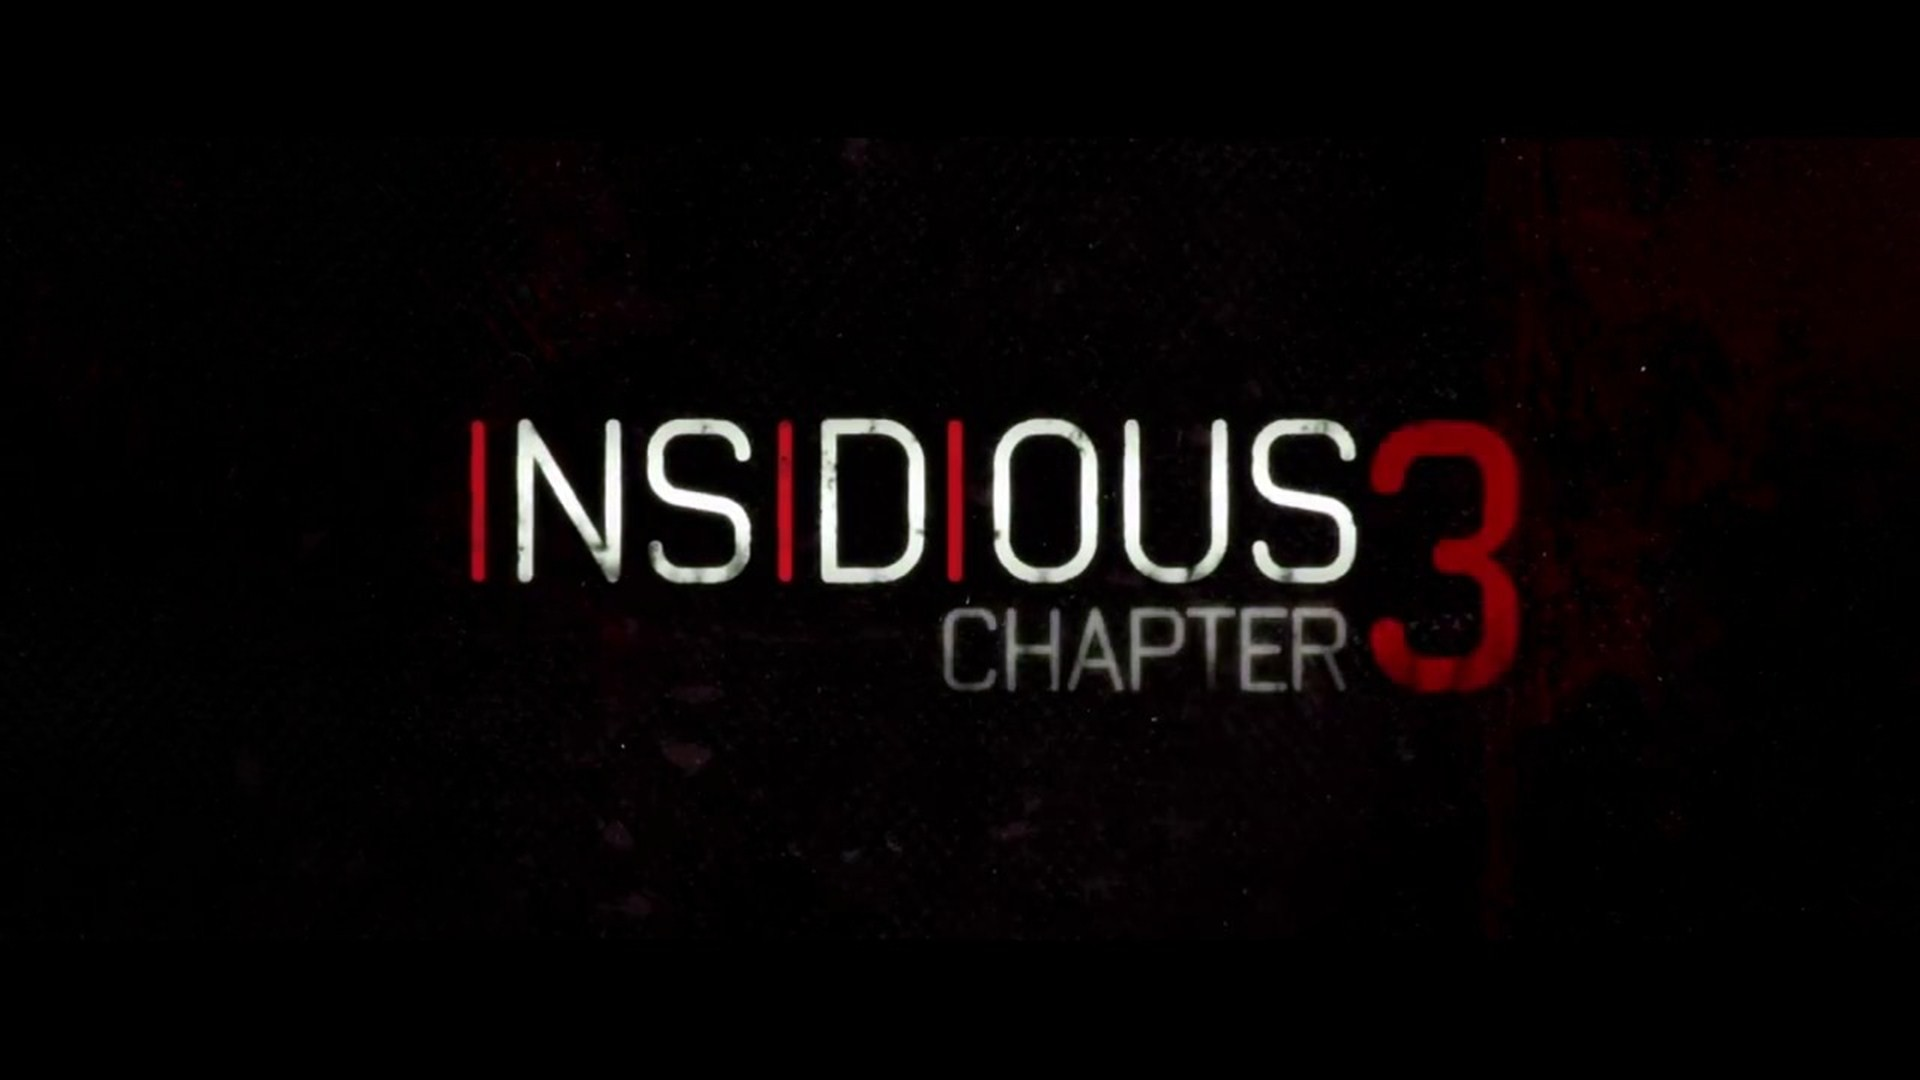 insidious-chapter-3-2015-poster-wallpape